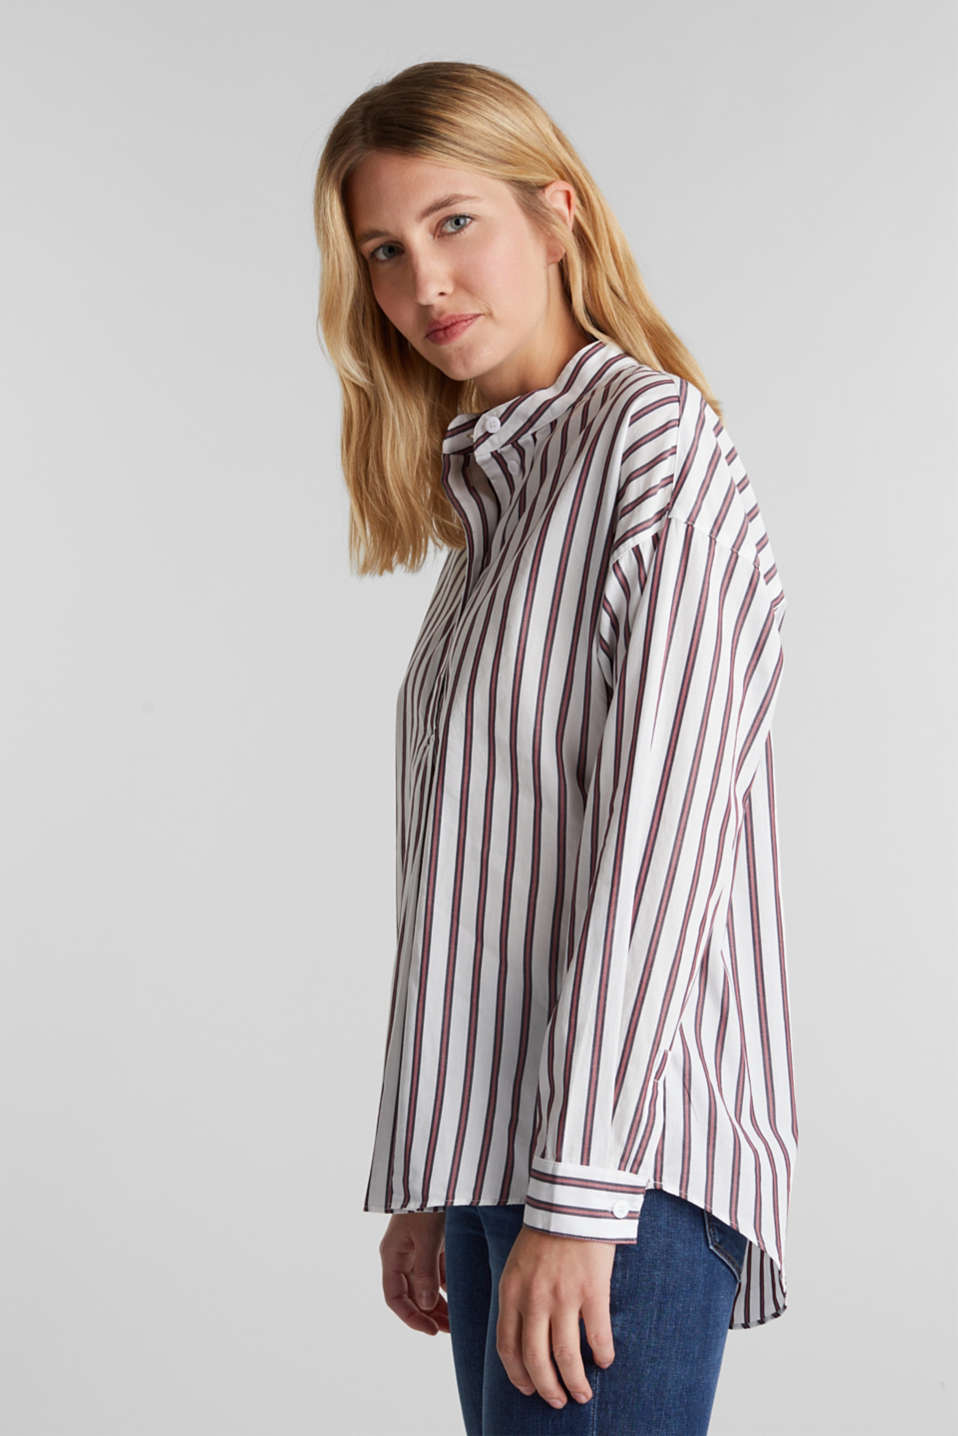 Slip-on blouse with a stand-up collar, 100% cotton, OFF WHITE, detail image number 5